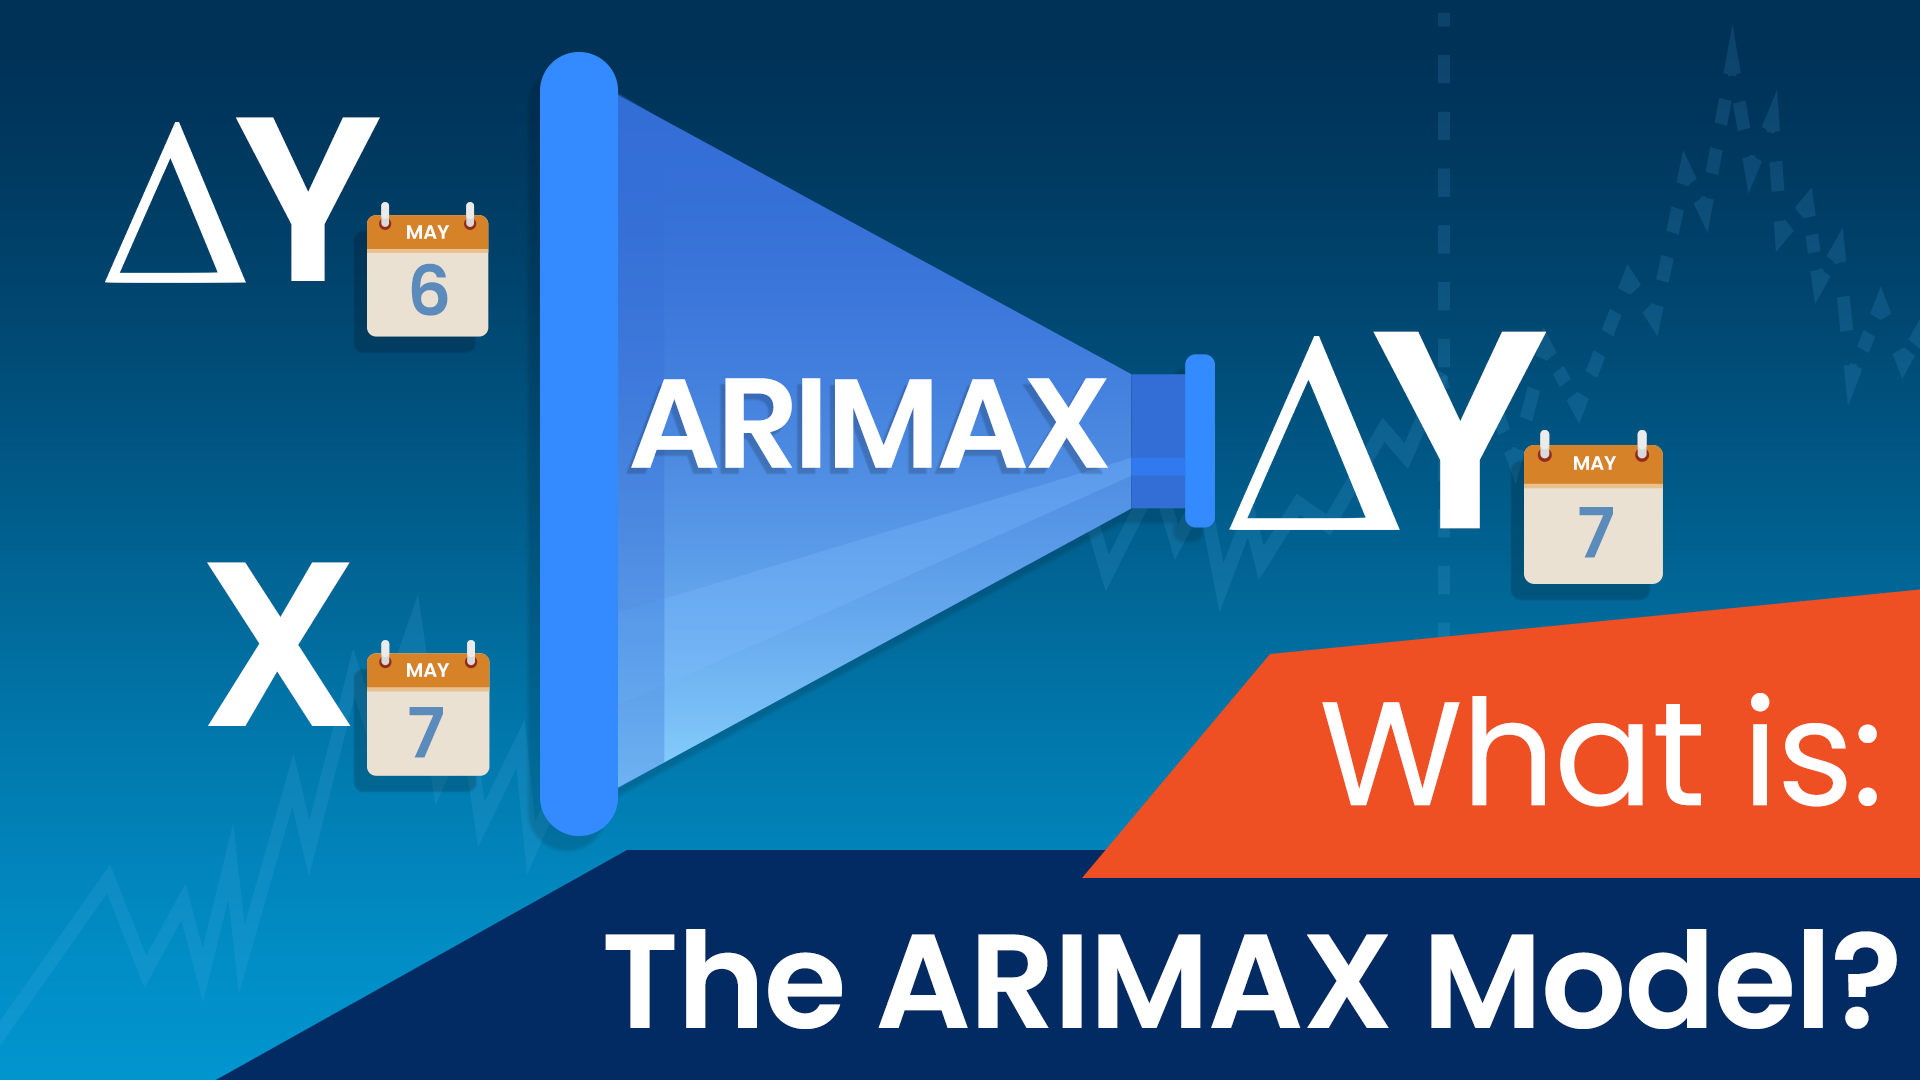 What Is an ARIMAX Model?